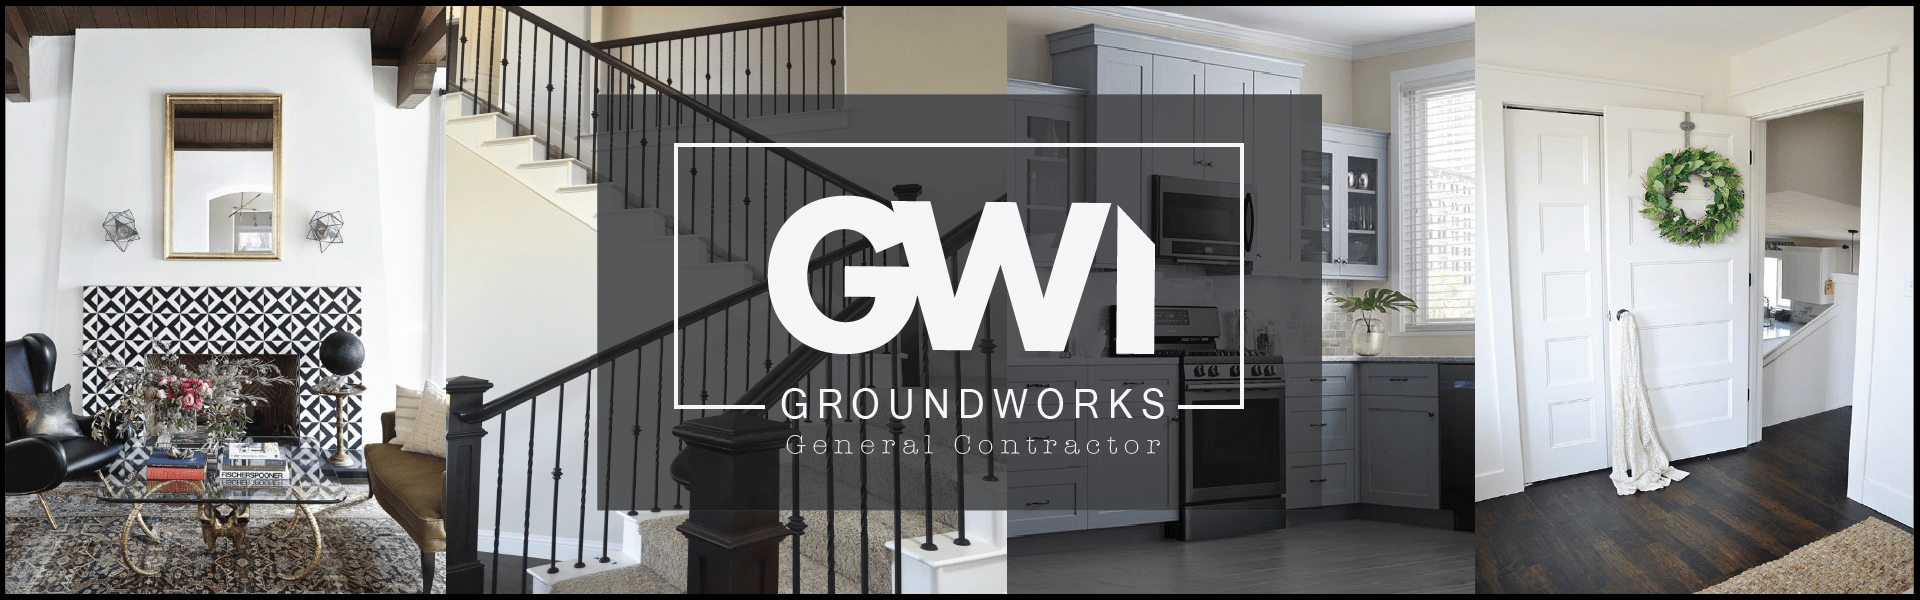 renovations, general contractors, restoration, residential